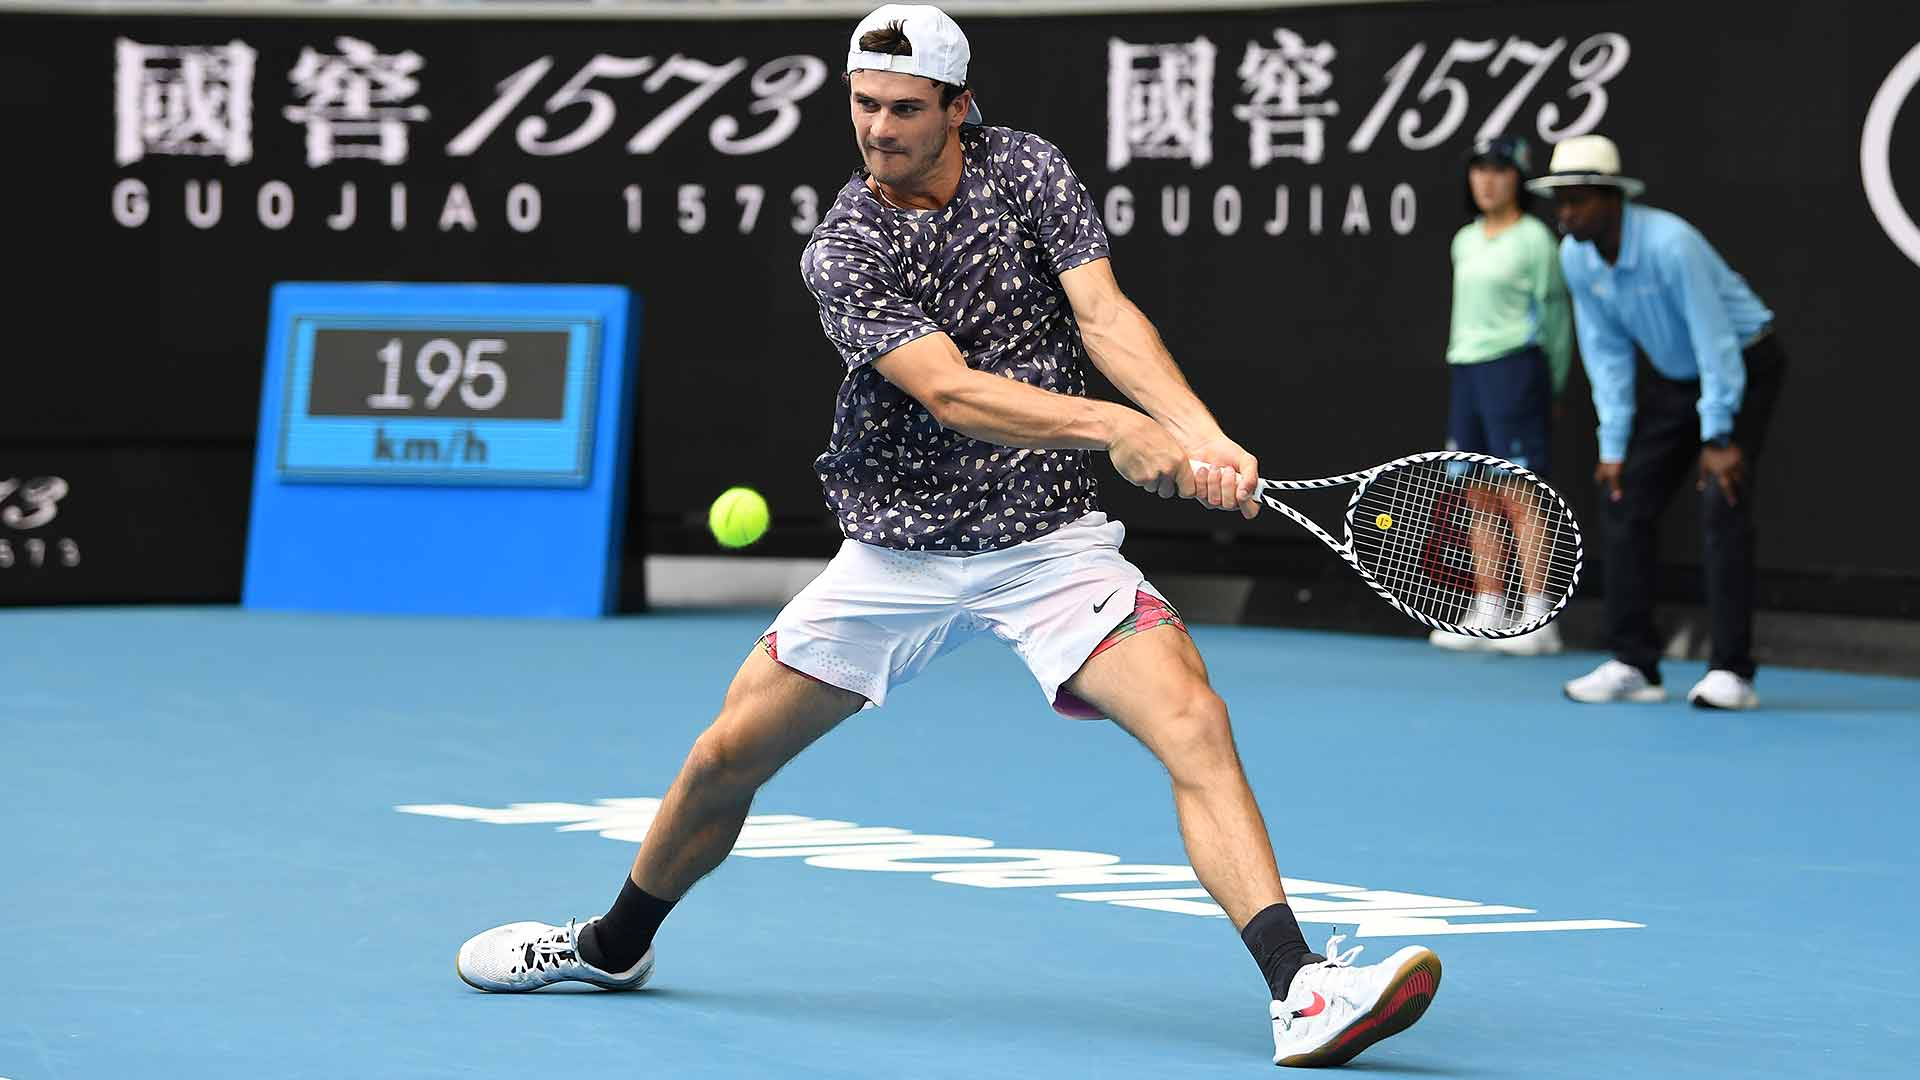 American <a href='/en/players/tommy-paul/pl56/overview'>Tommy Paul</a> reaches the third round of a Grand Slam for the first time on Wednesday at the <a href='/en/tournaments/australian-open/580/overview'>Australian Open</a>.